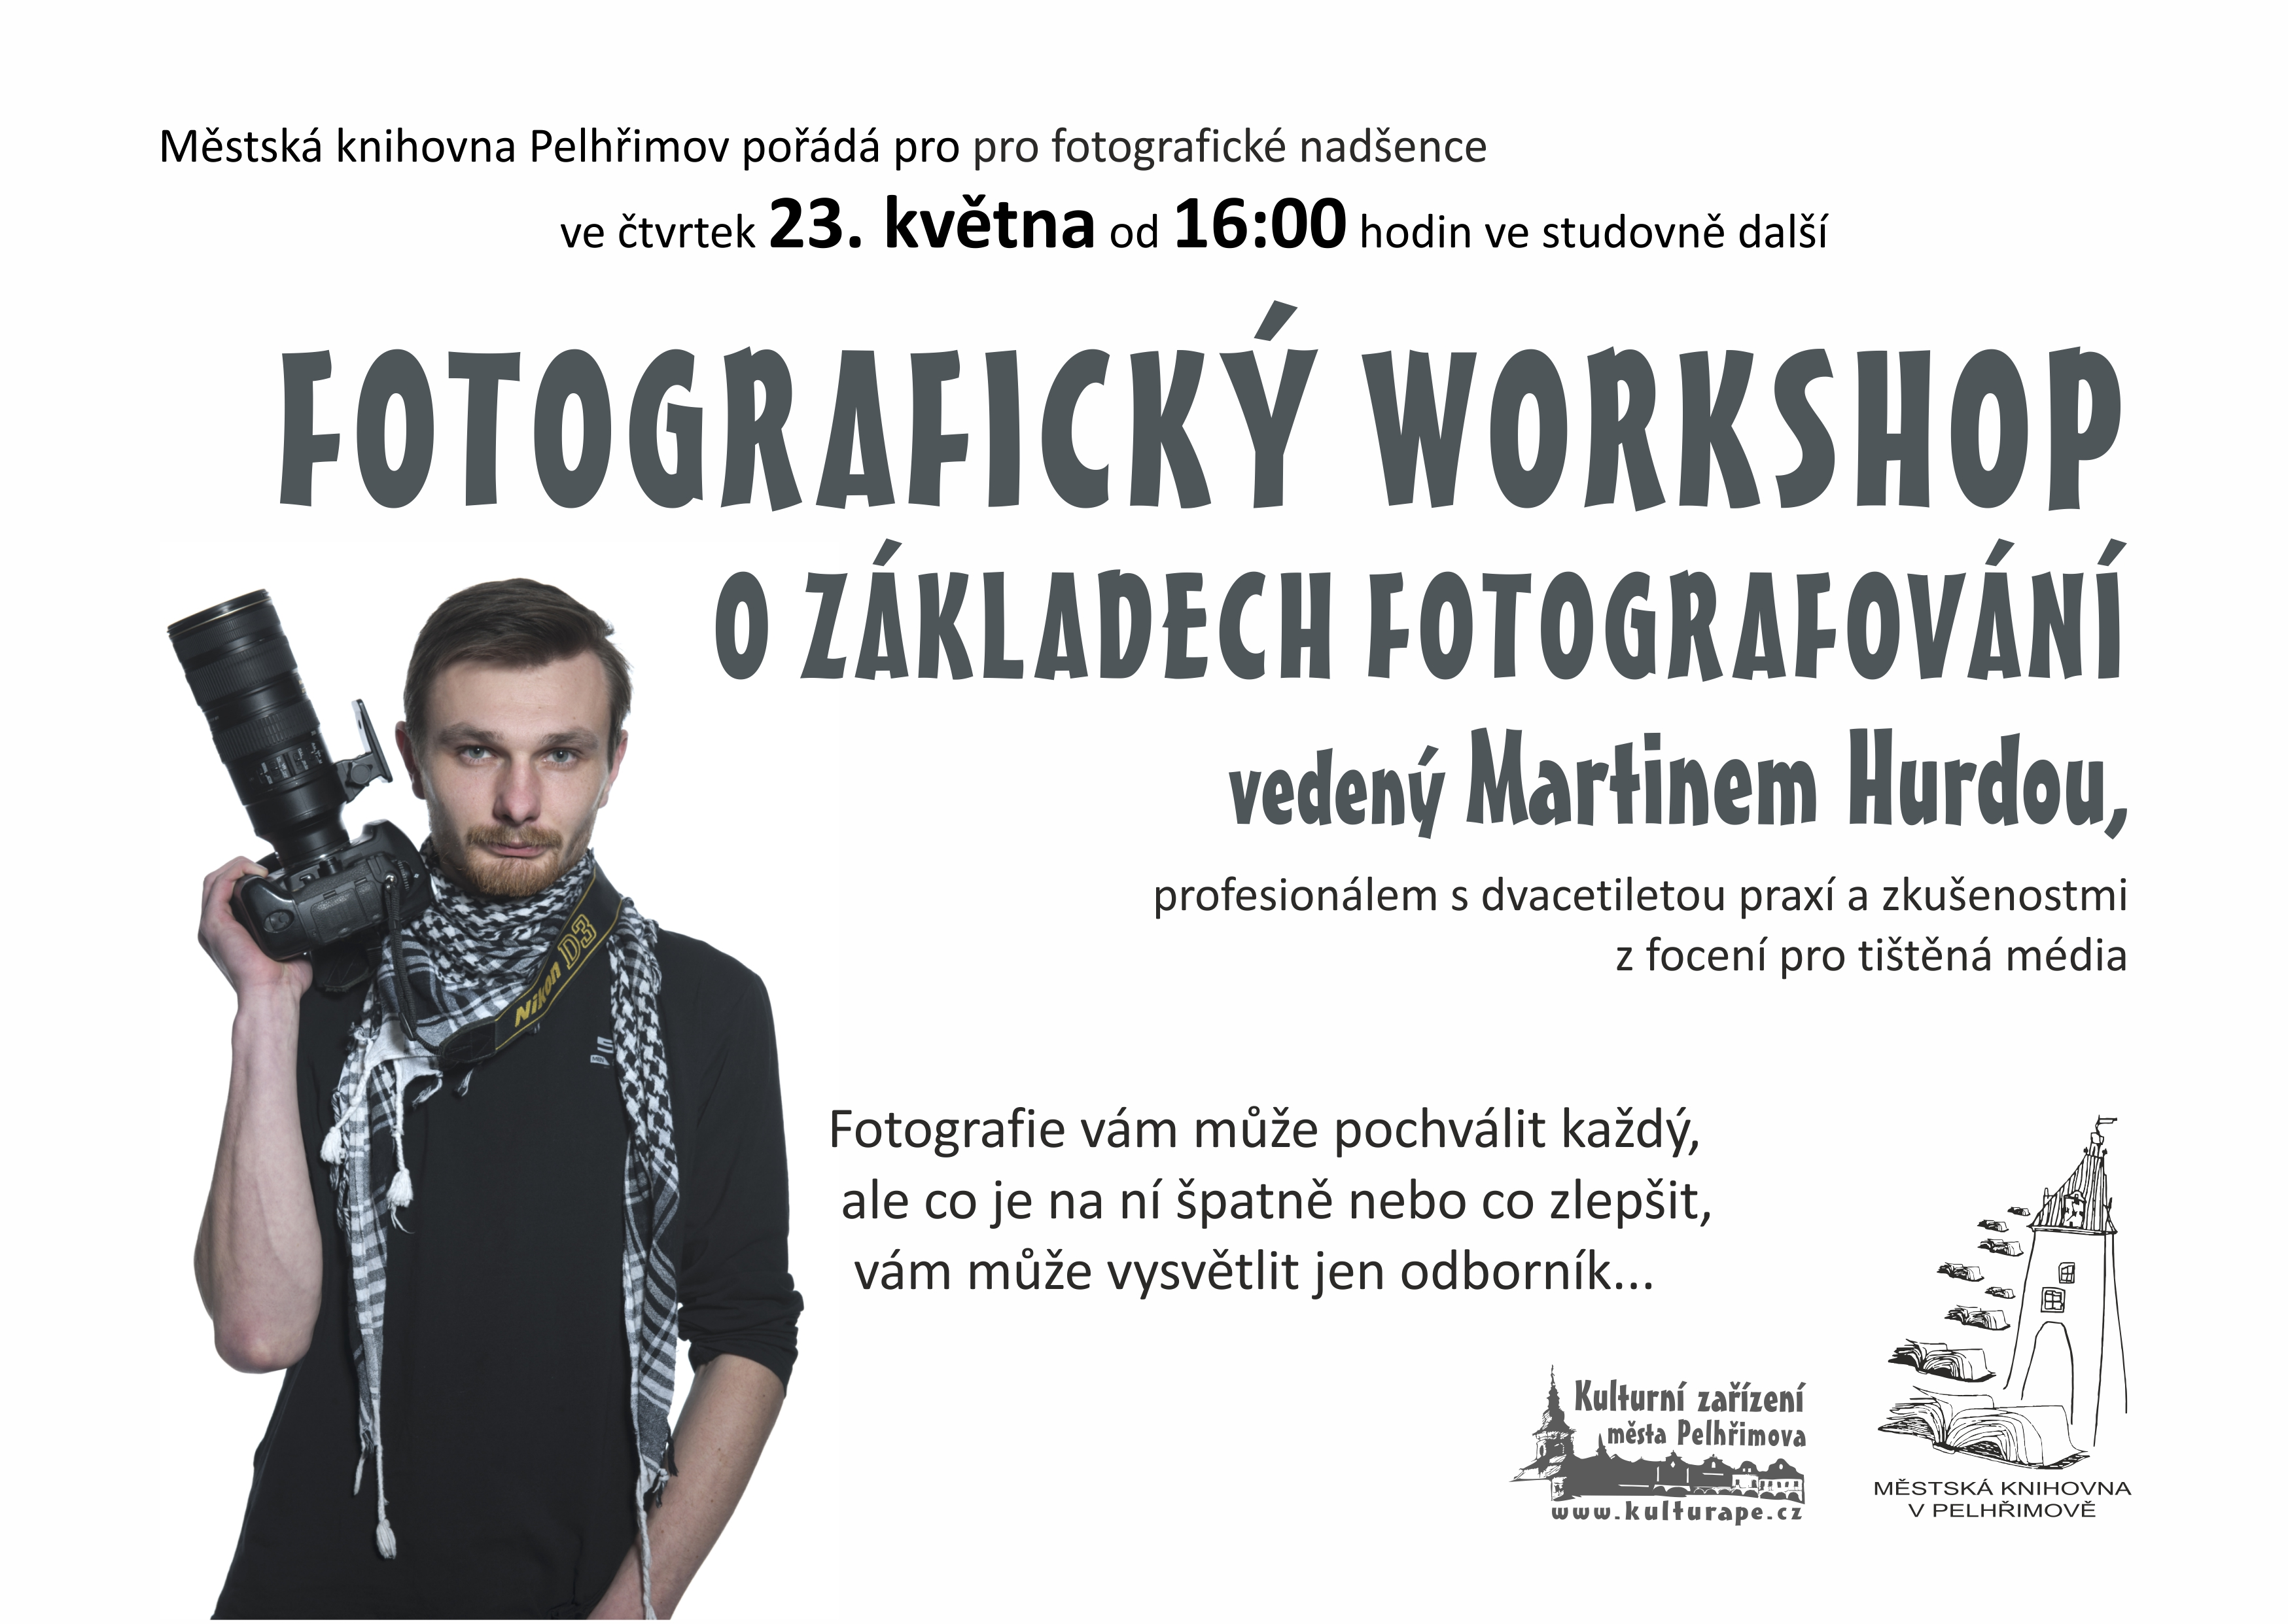 05.23.19. Fotografick workshop